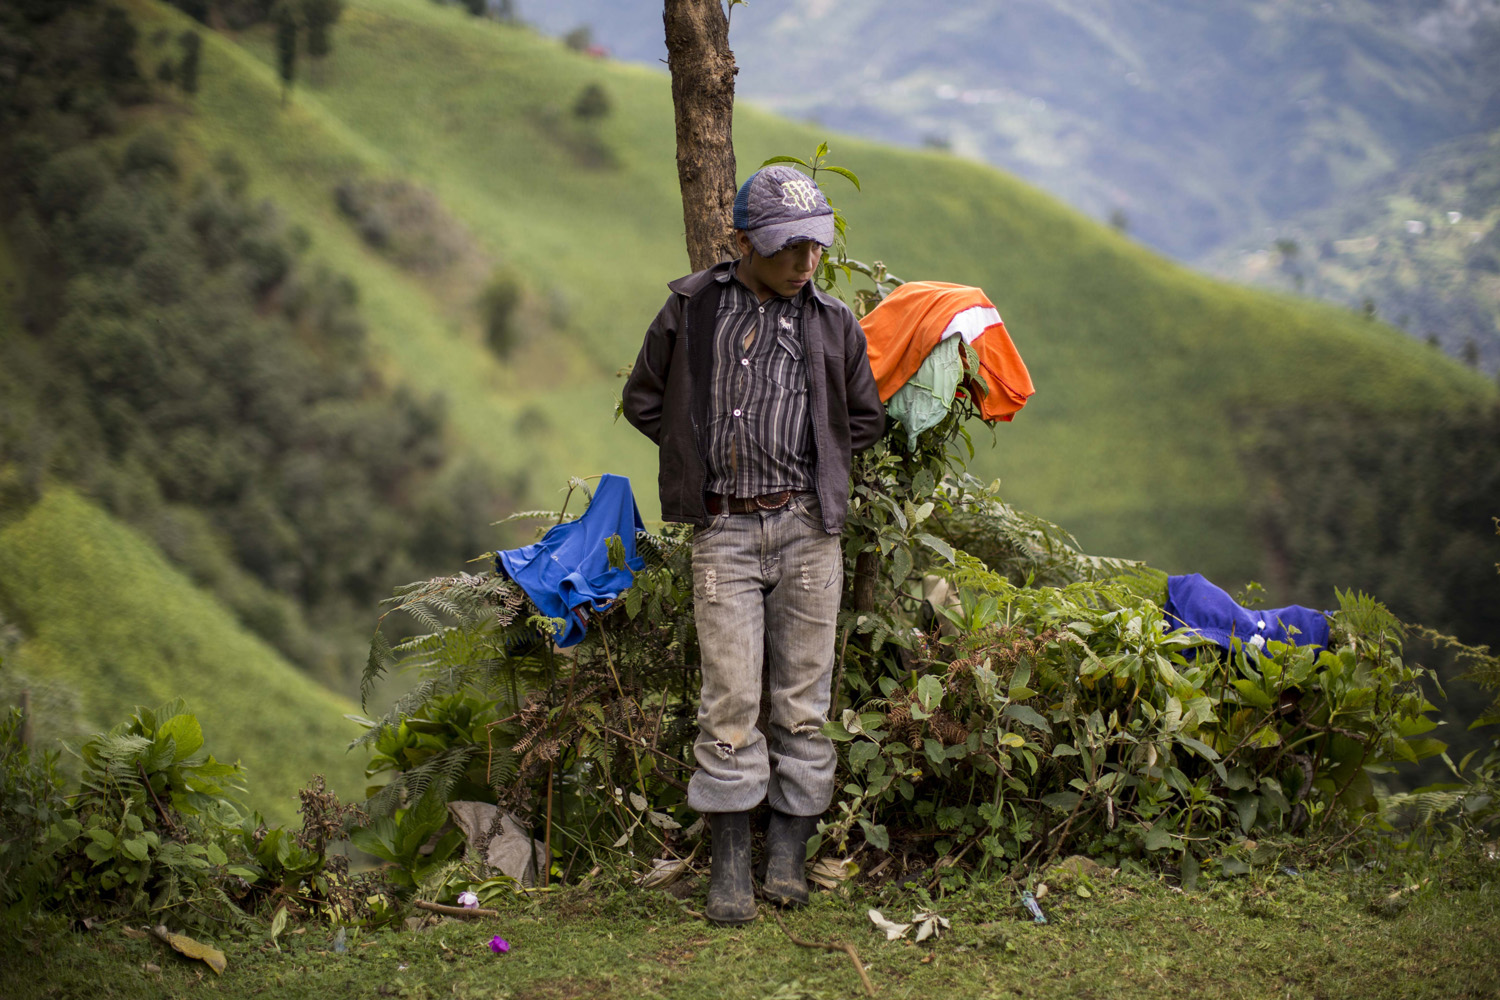 Jul. 1, 2014. Gilberto Haroldo Ramos Juarez, 11, brother of Gilberto Francisco Ramos Juarez, a Guatemalan boy whose decomposed body was found in the Rio Grande Valley of South Texas, stands in front of his home in San Jose Las Flores, in the northern Cuchumatanes mountains of Guatemala.